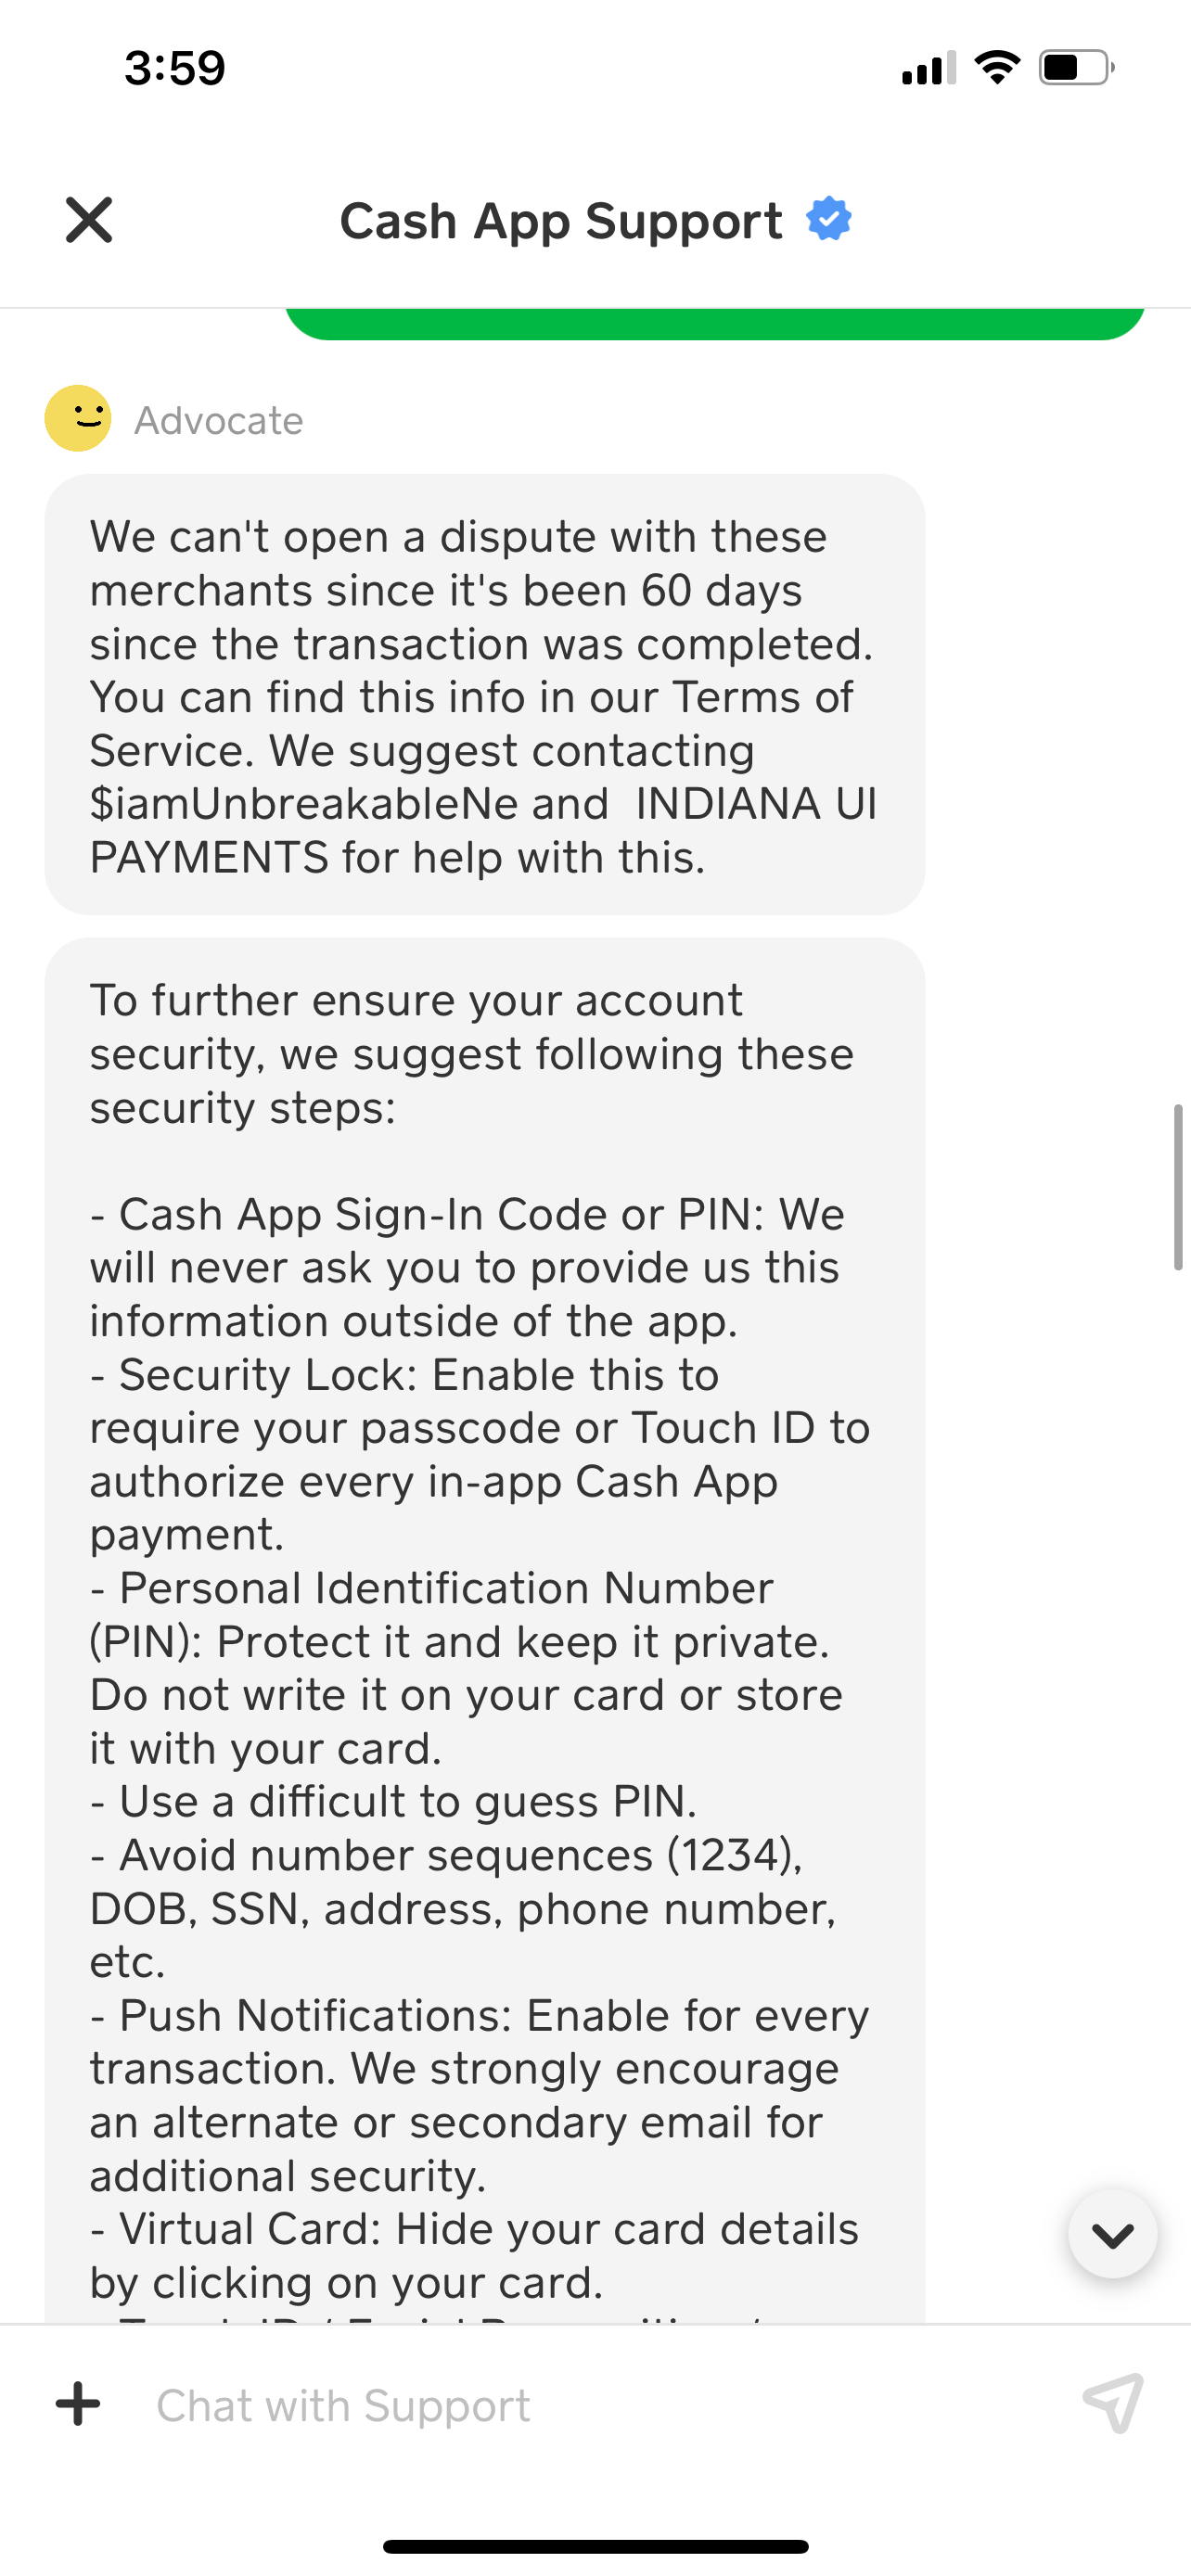 Unauthorized access to my account. Unauthorized and fraudulent payments made without my knowledge.